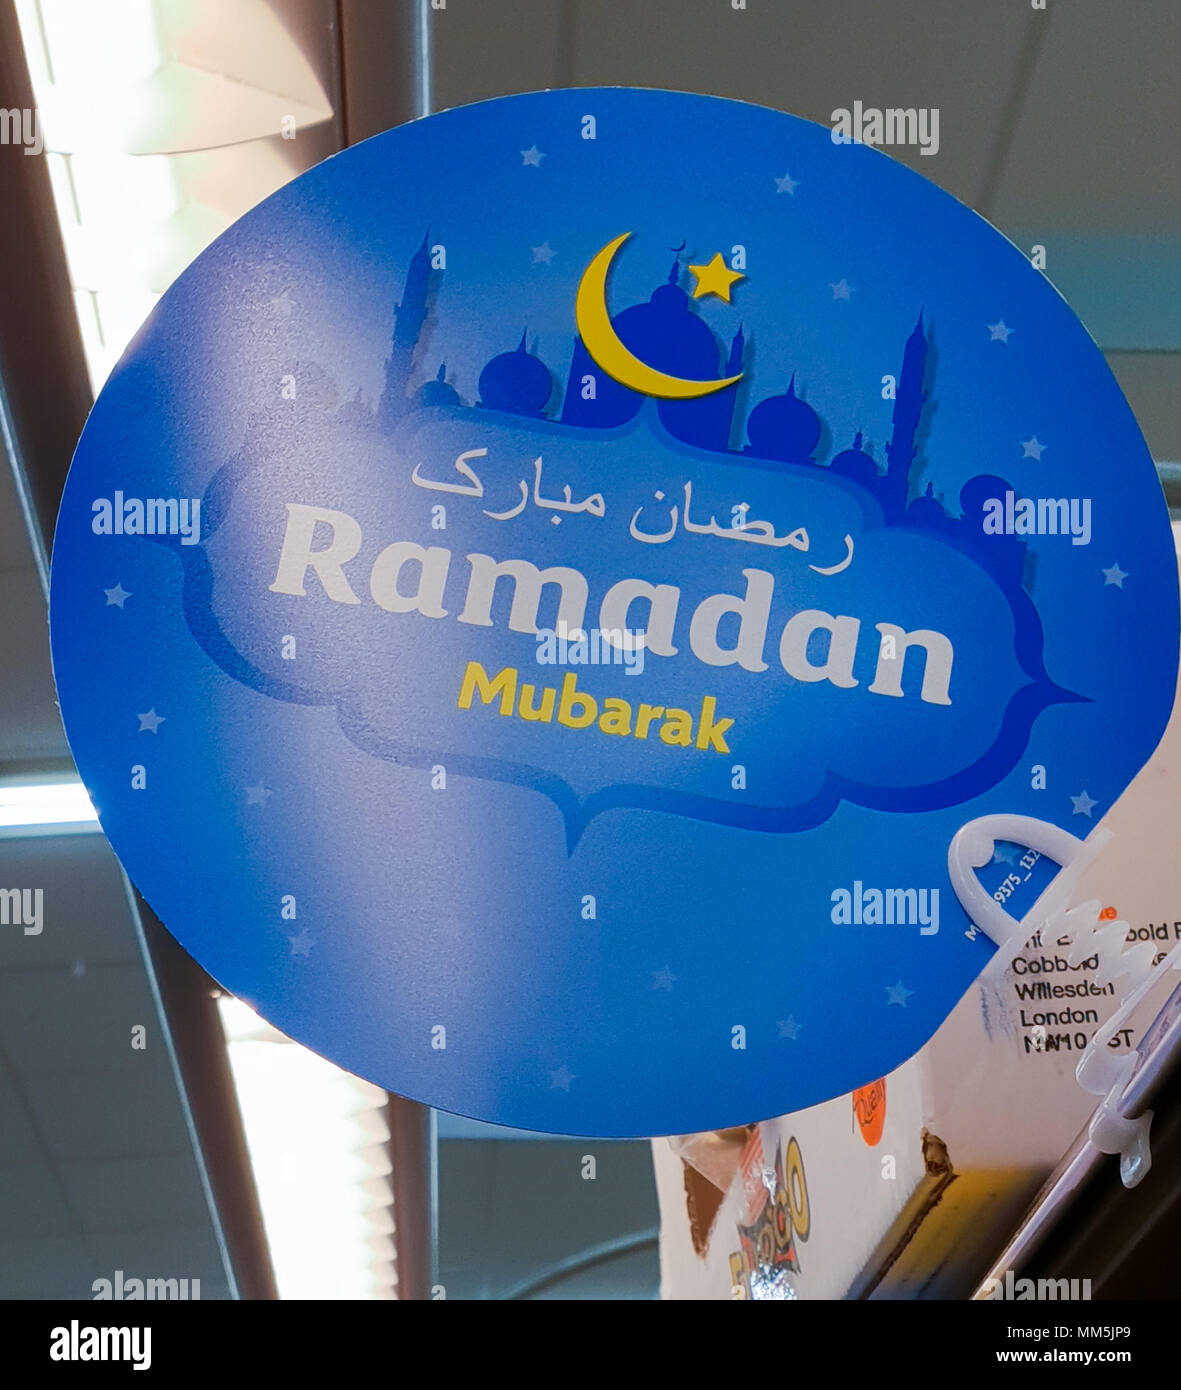 Great London 2017 Eid Al-Fitr 2018 - supermarket-morrisons-stocks-up-for-ramadan-which-begins-on-wednesday-16-may-and-ends-on-thursday-14-june-2018-the-first-day-of-shawwal-and-eid-al-fitr-falls-on-friday-15-june-2018-featuring-view-where-london-united-kingdom-when-08-apr-2018-credit-dinendra-hariawenn-MM5JP9  Image_701128 .jpg